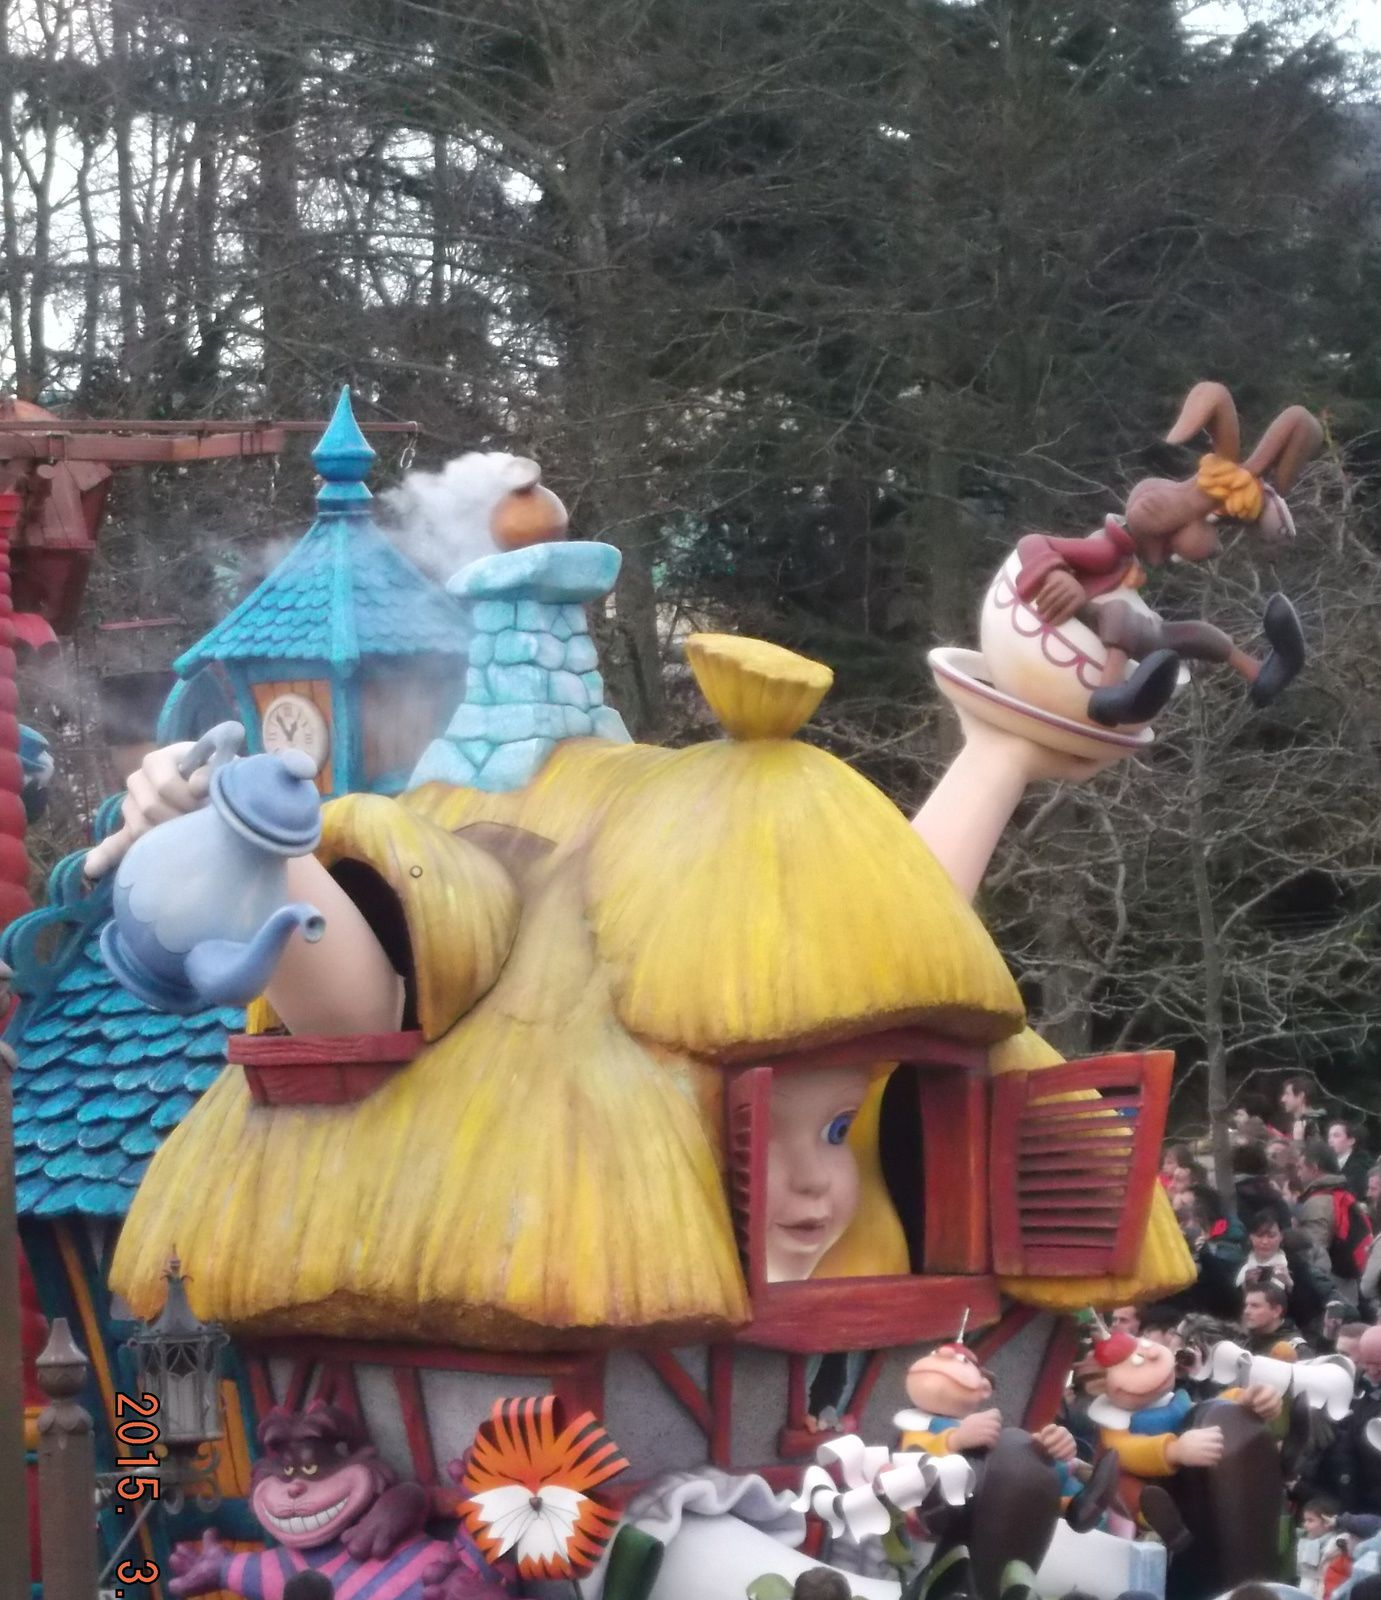 la parade du printemps : la Reine des neiges, Alice au pays des merveilles, Toy Story, Winnie l'ourson, le Roi lion, le livre de la jungle,Mary Poppins .... cloturé par Mickey